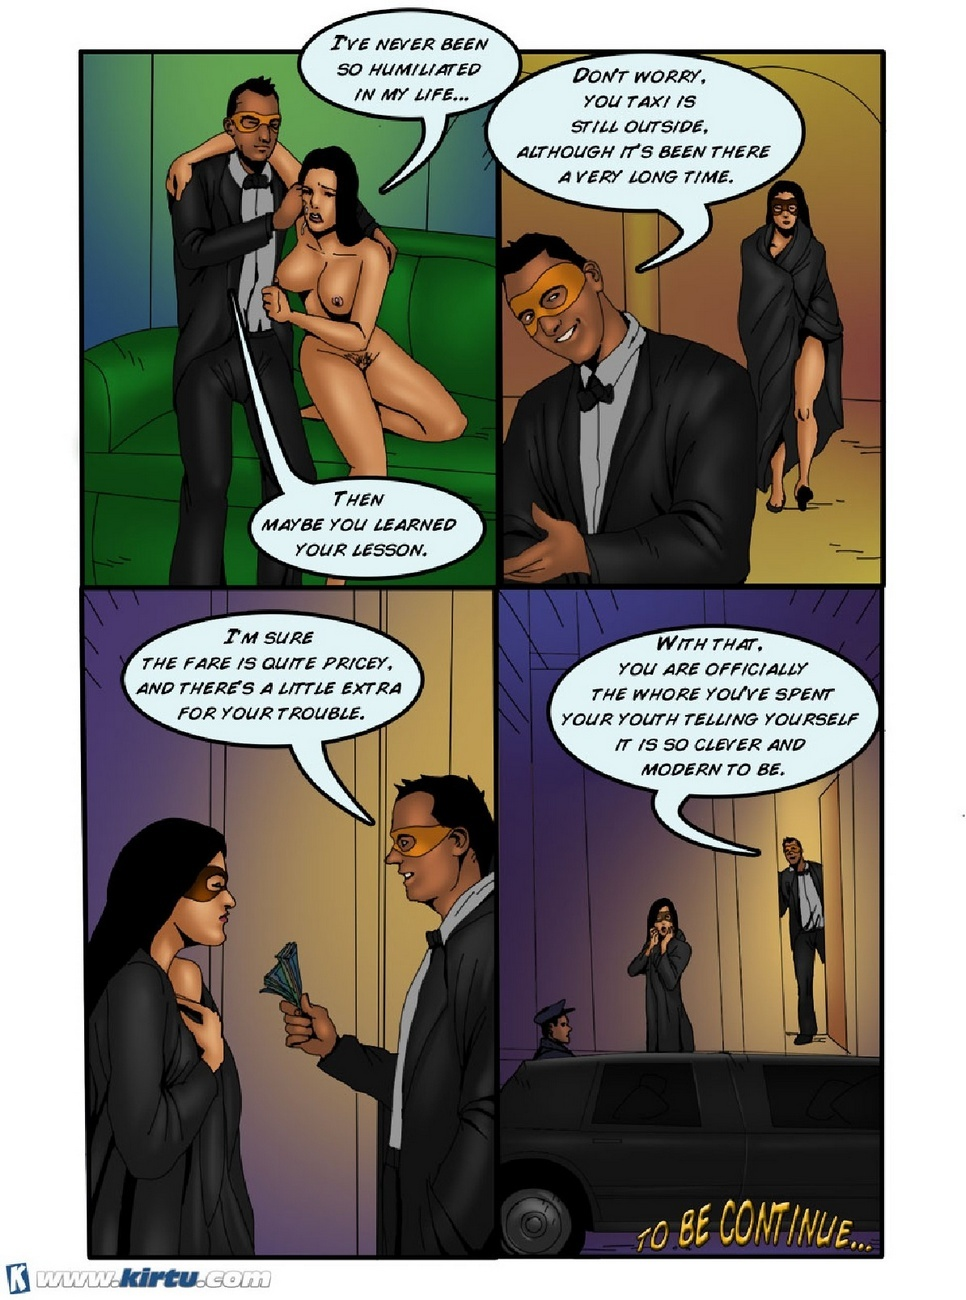 Saath Kahaniya 10 – The Game Sex Comic